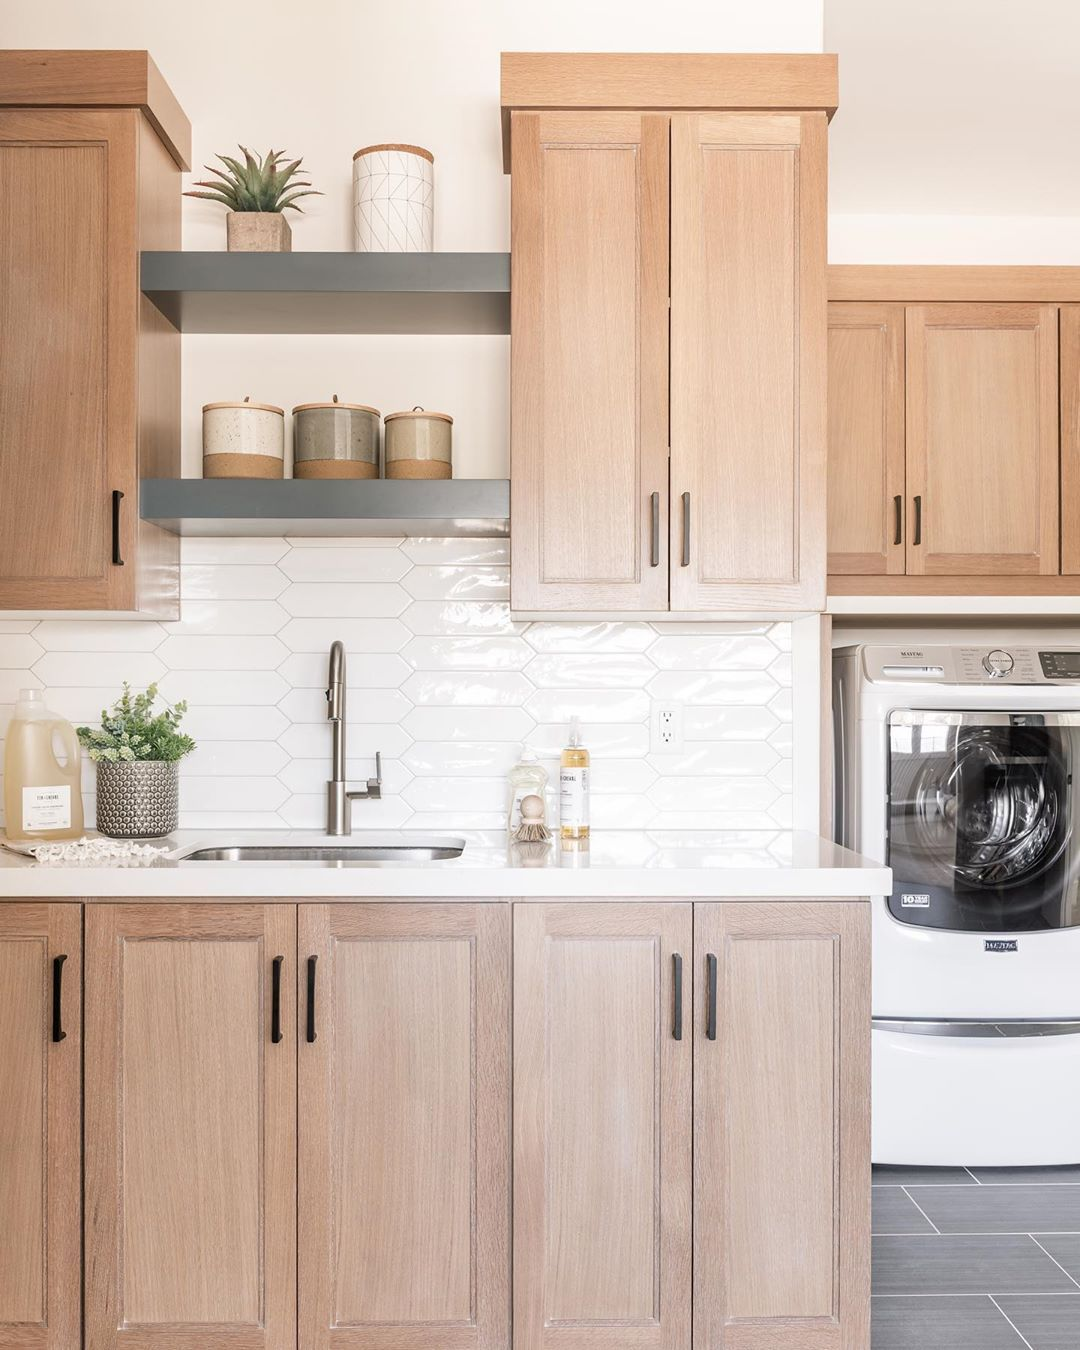 Remedy Furniture Design On Instagram One Of Our Most Popular Designs To Date Tag Someone Who W In 2020 Home Kitchens Home Decor Kitchen Kitchen Backsplash Designs